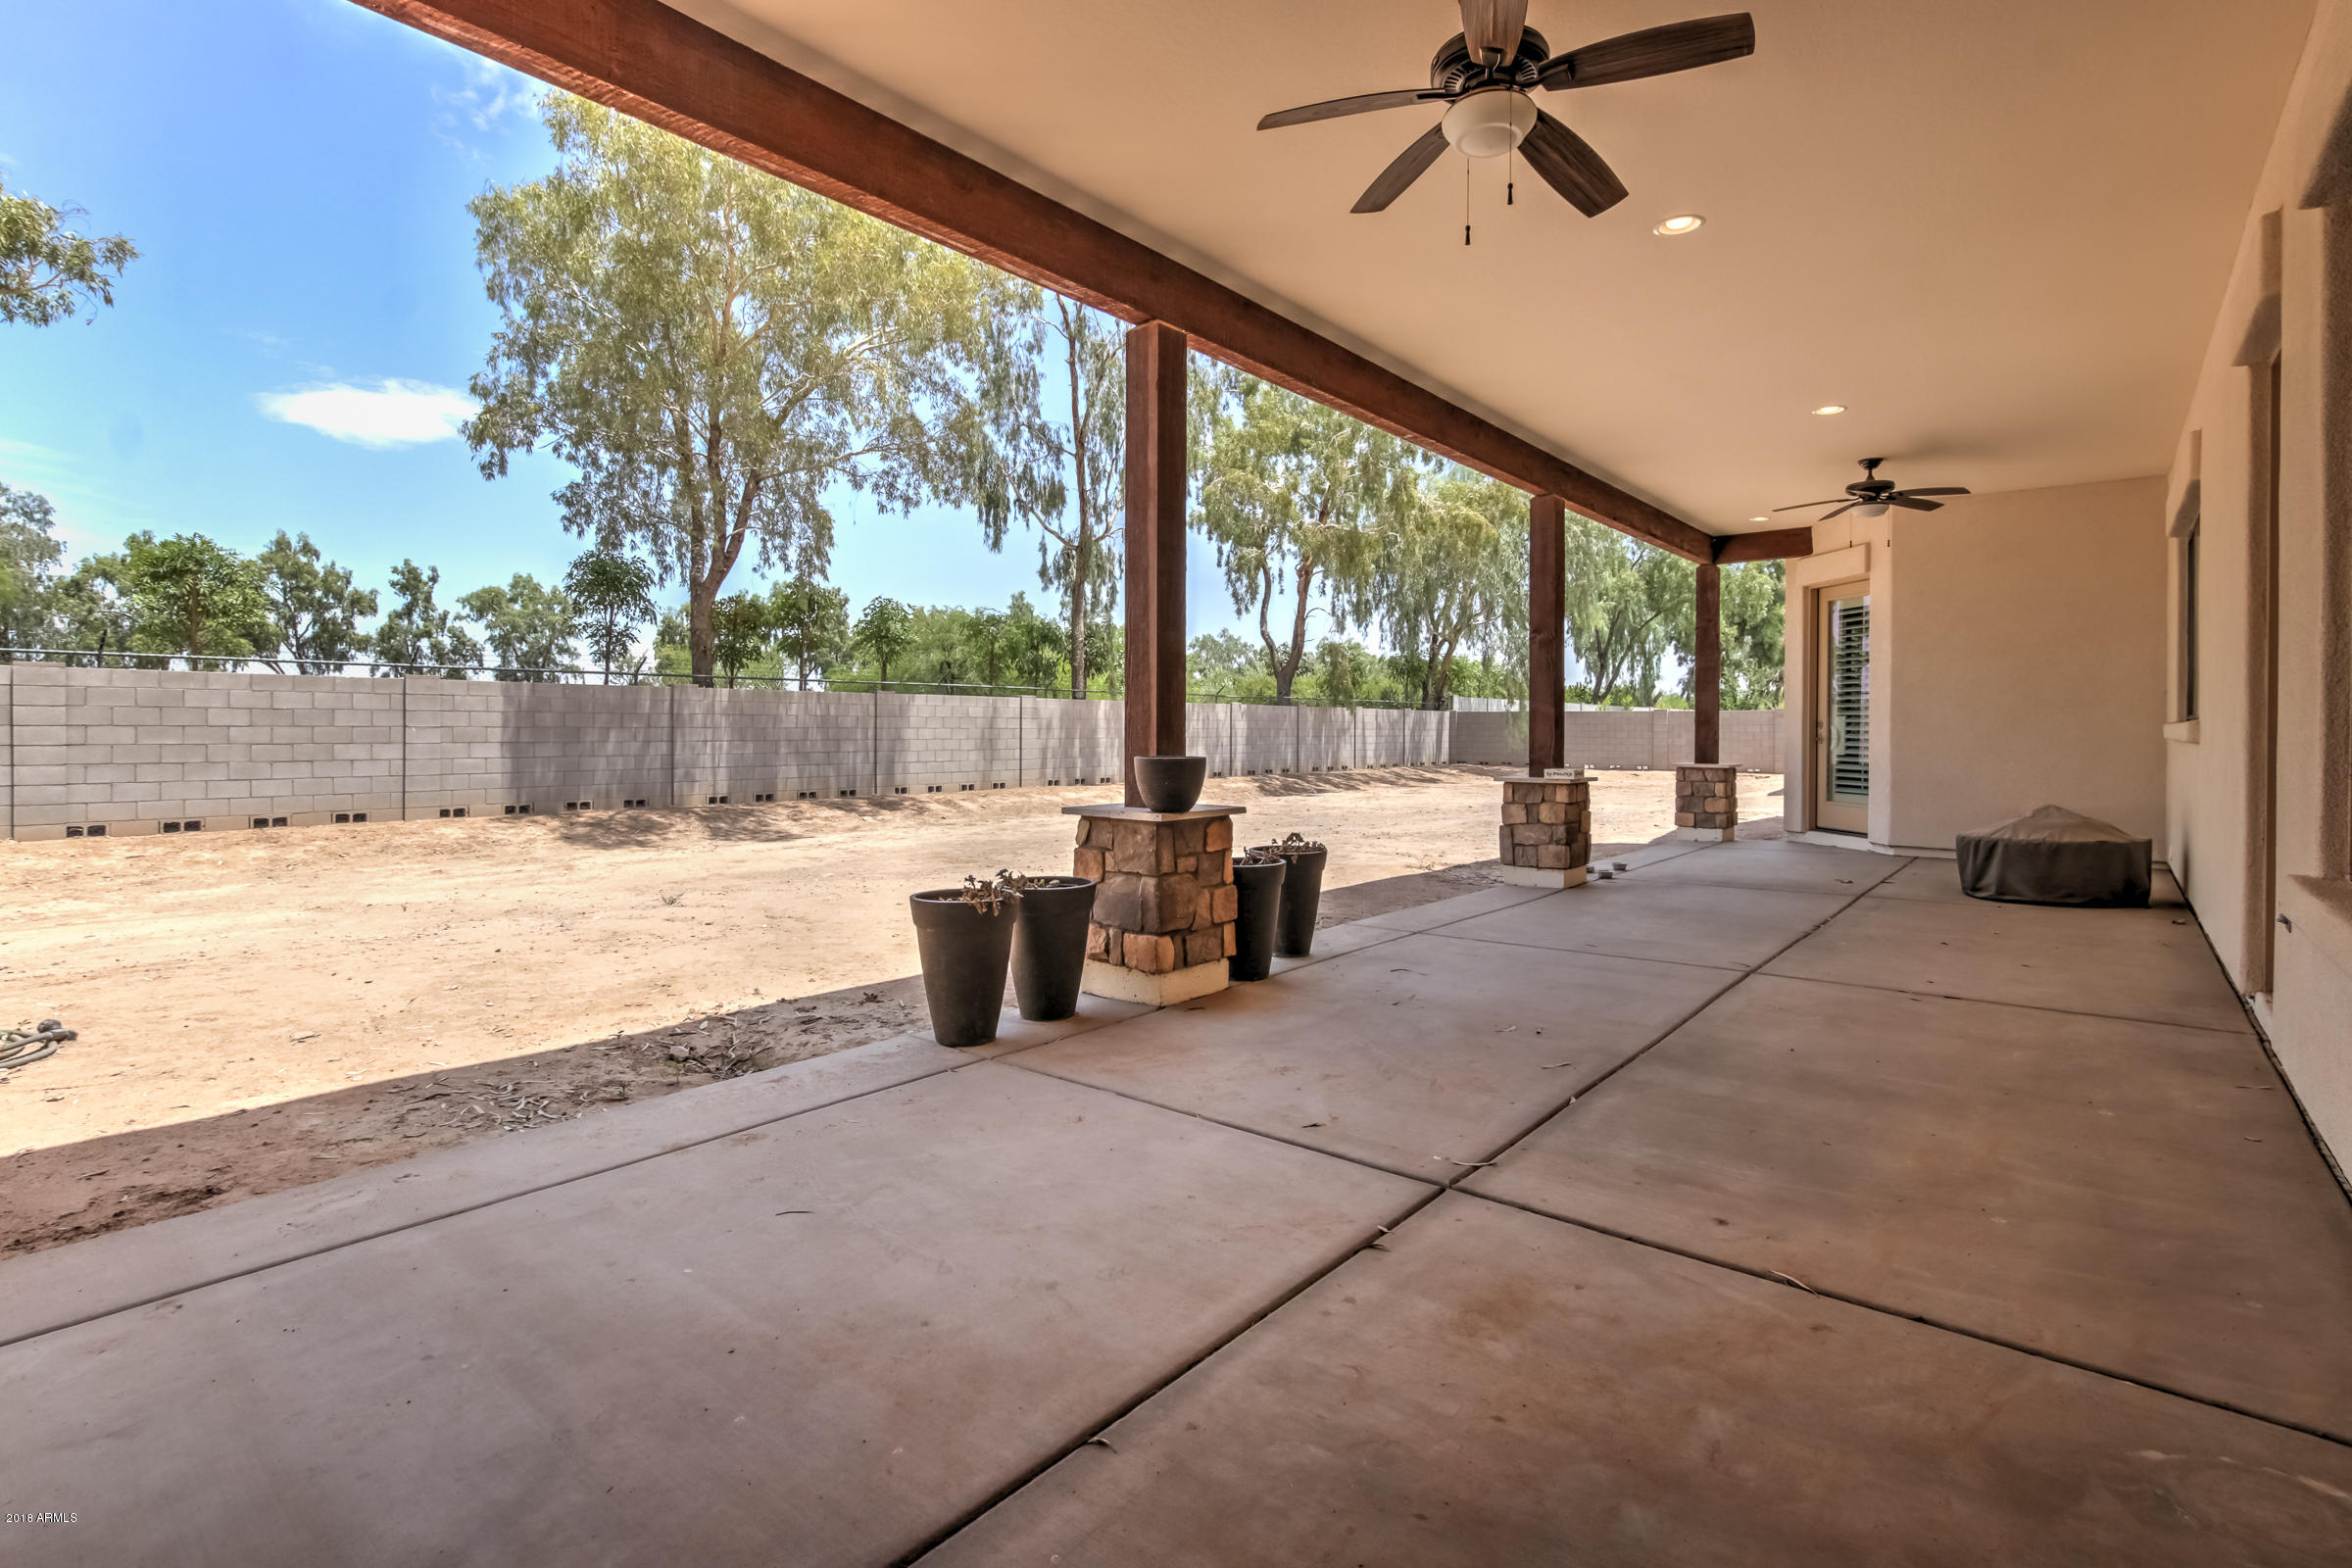 MLS 5799048 12208 E WOOD Drive, Chandler, AZ 85249 Chandler AZ Newly Built